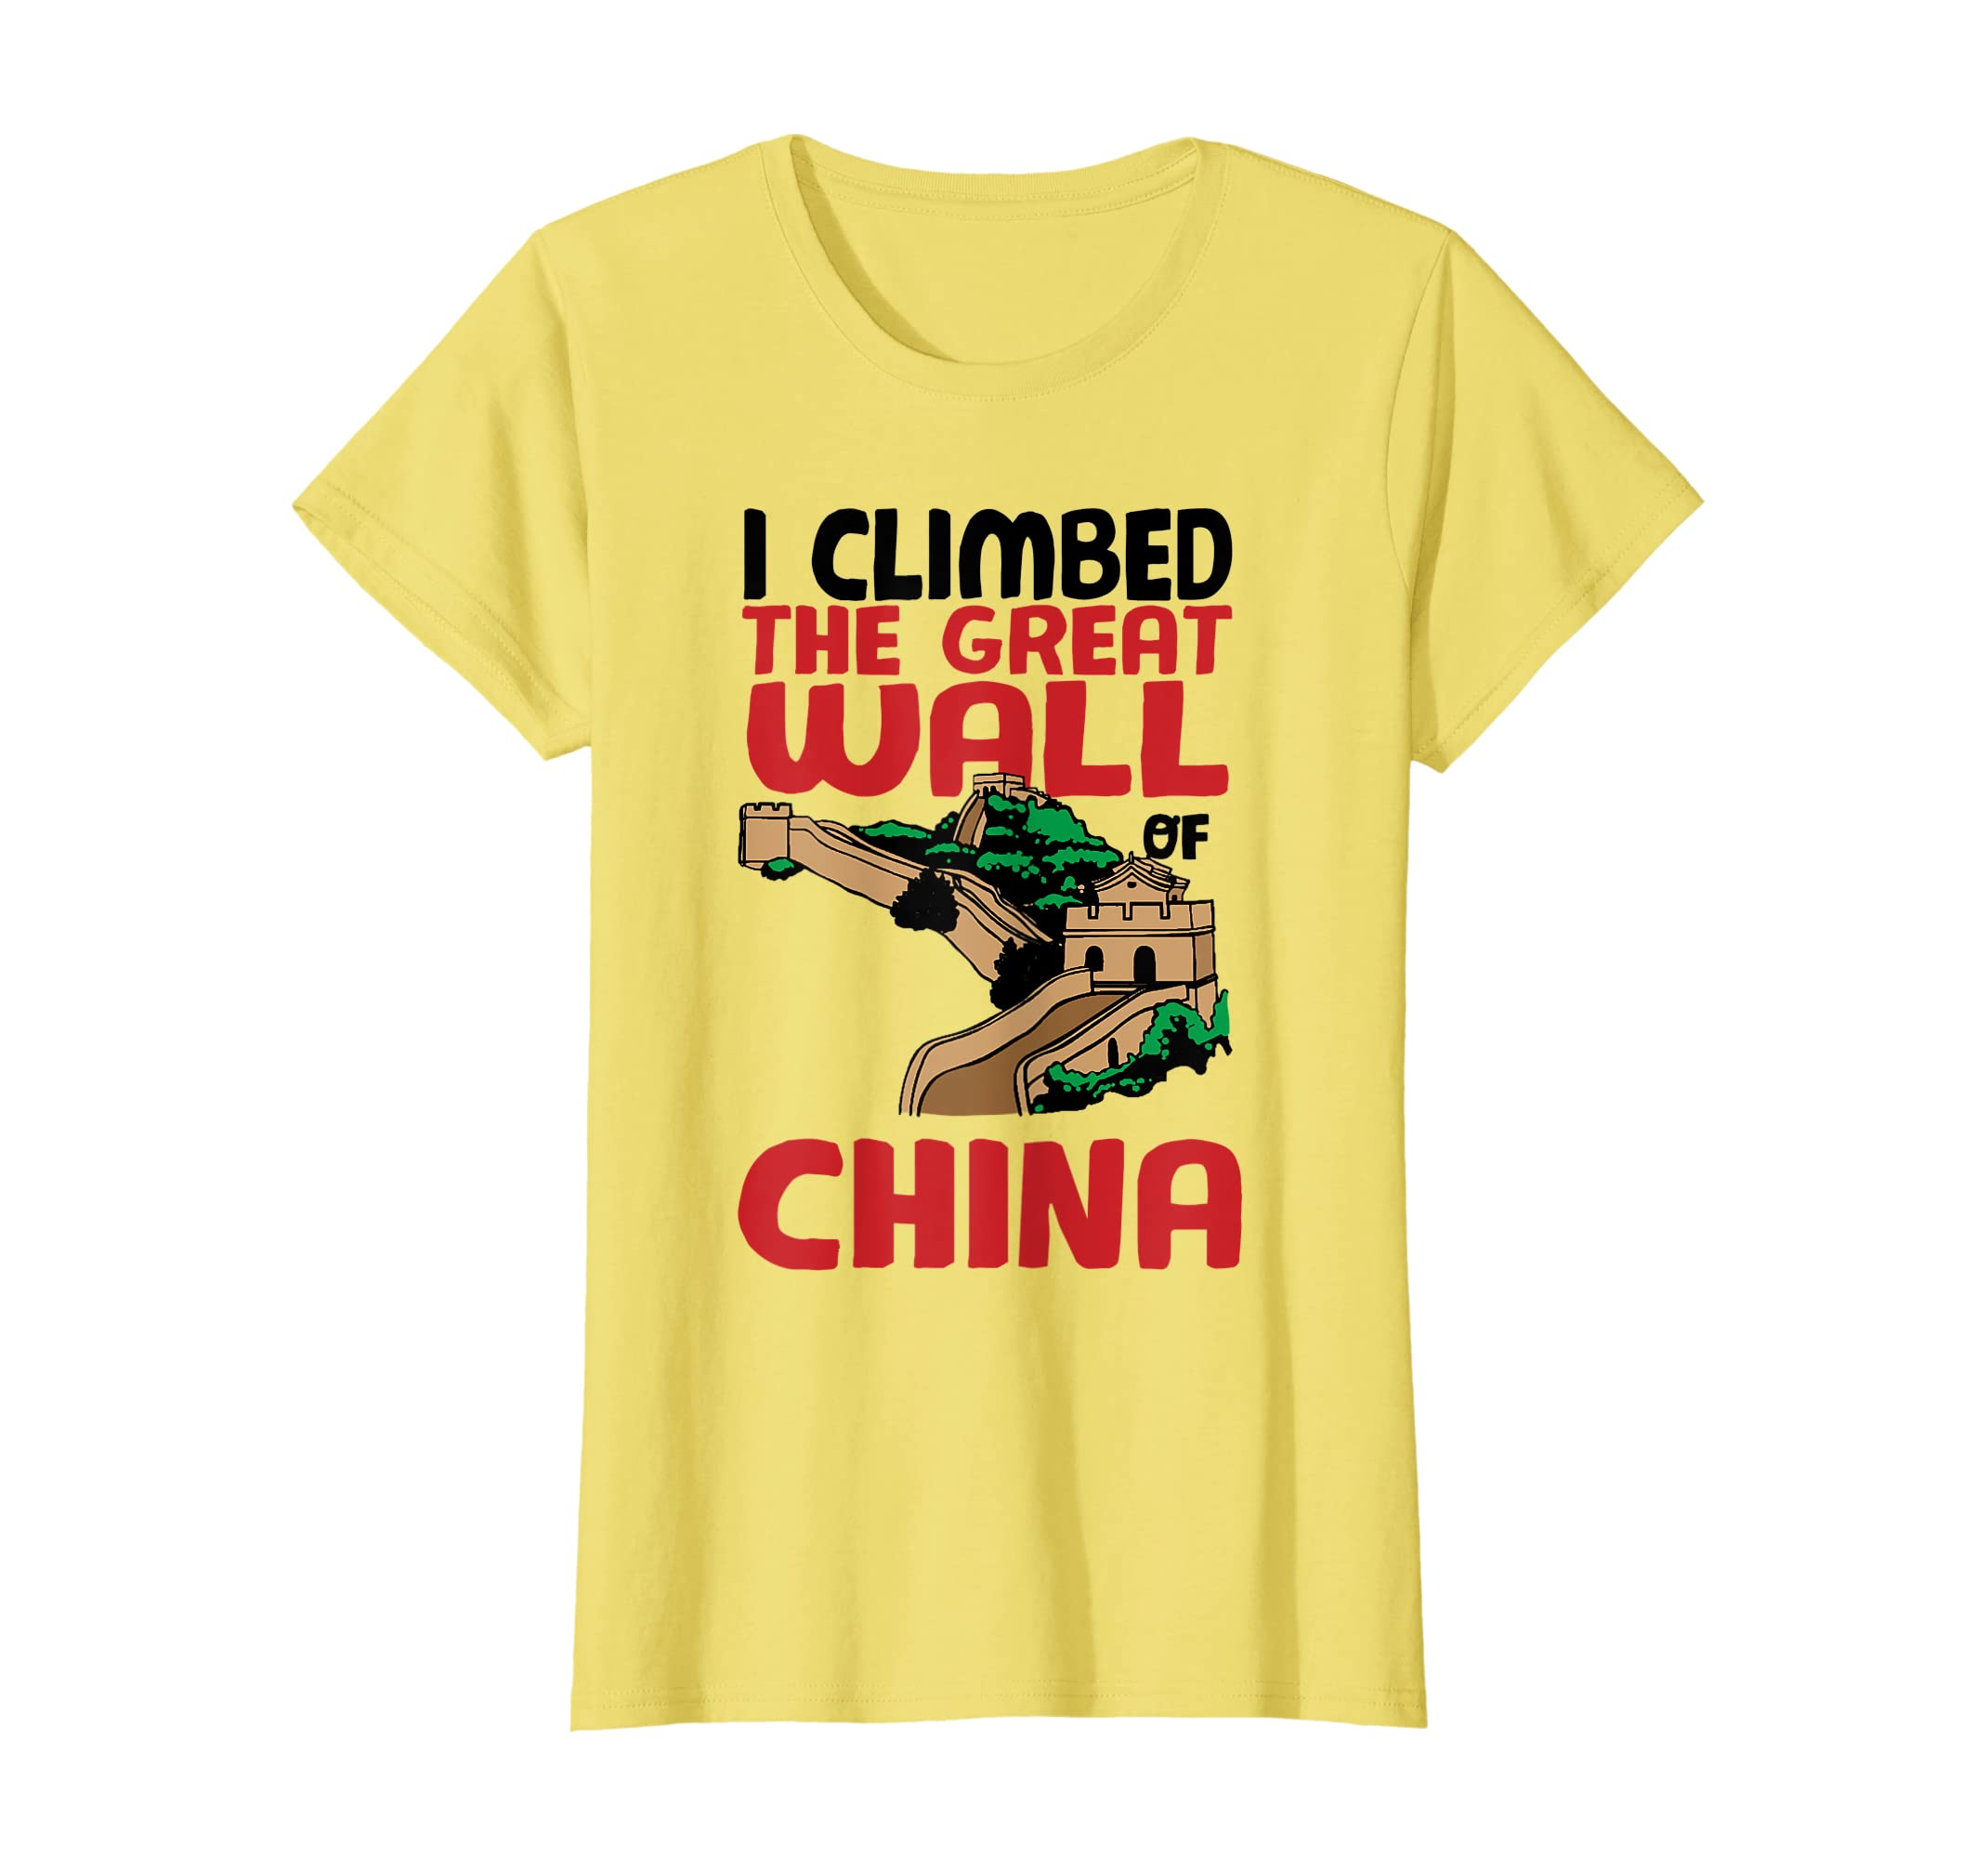 d255b1b5a Amazon.com: Cute Unique I Climbed The Great Wall Of China Shirt Gift:  Clothing